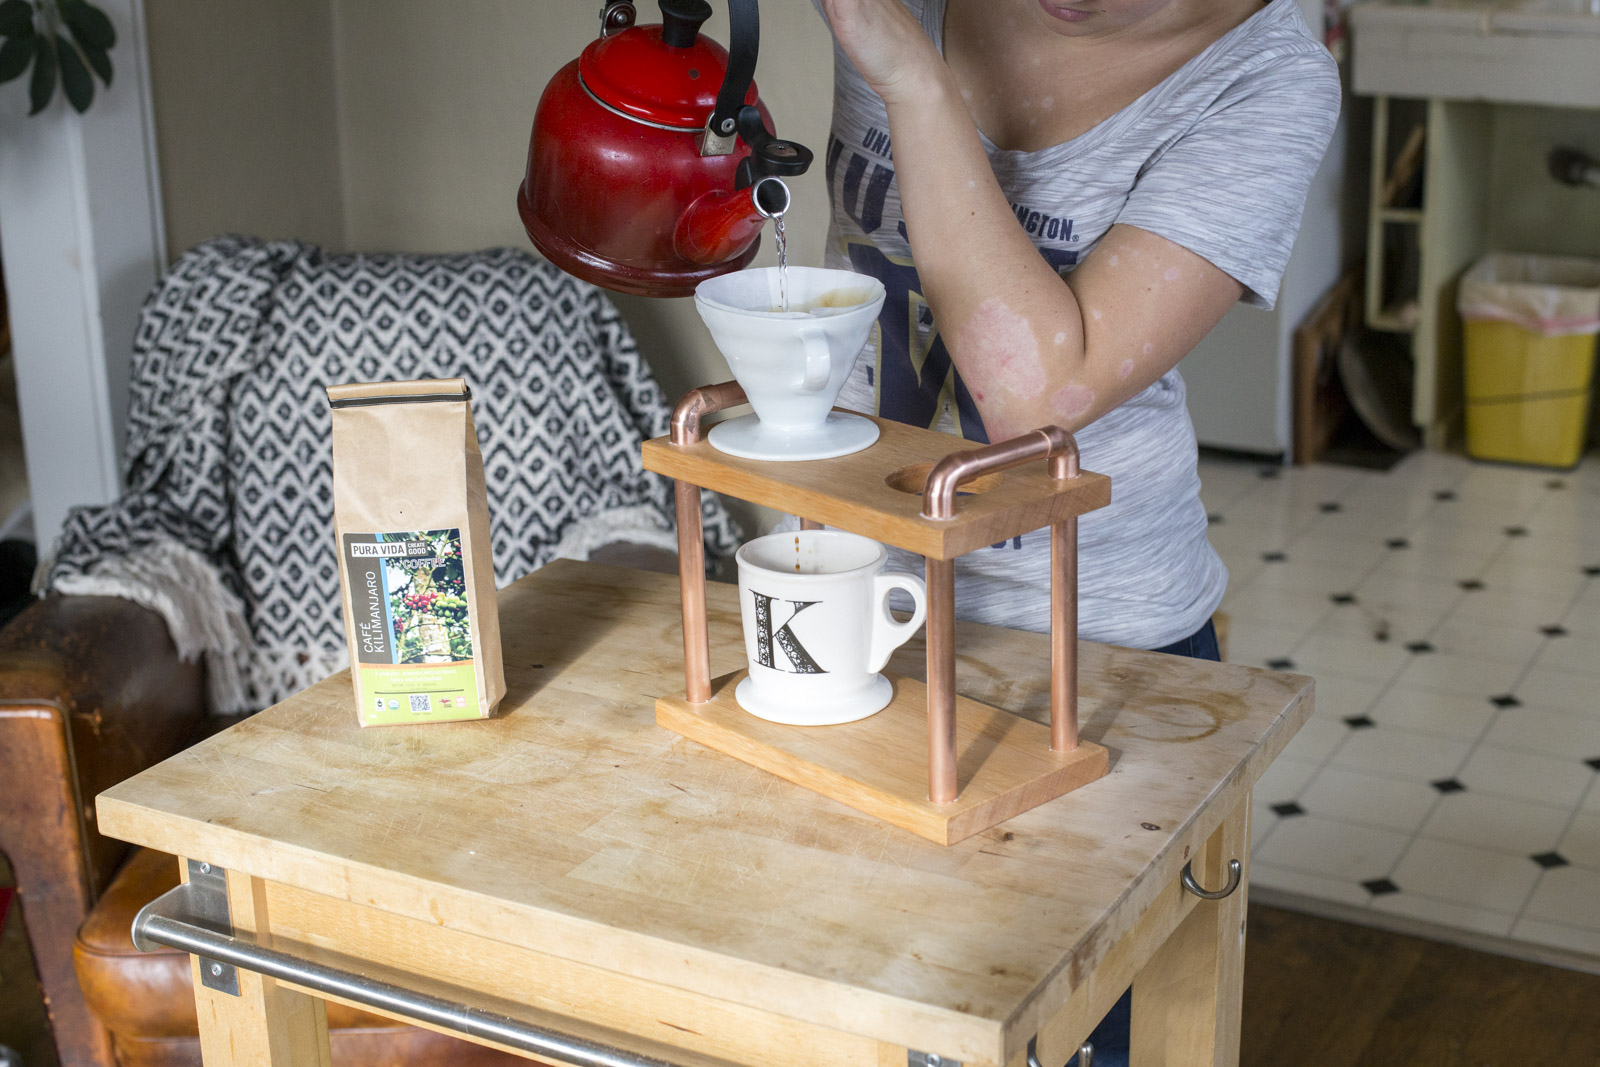 diy pour over coffee stand